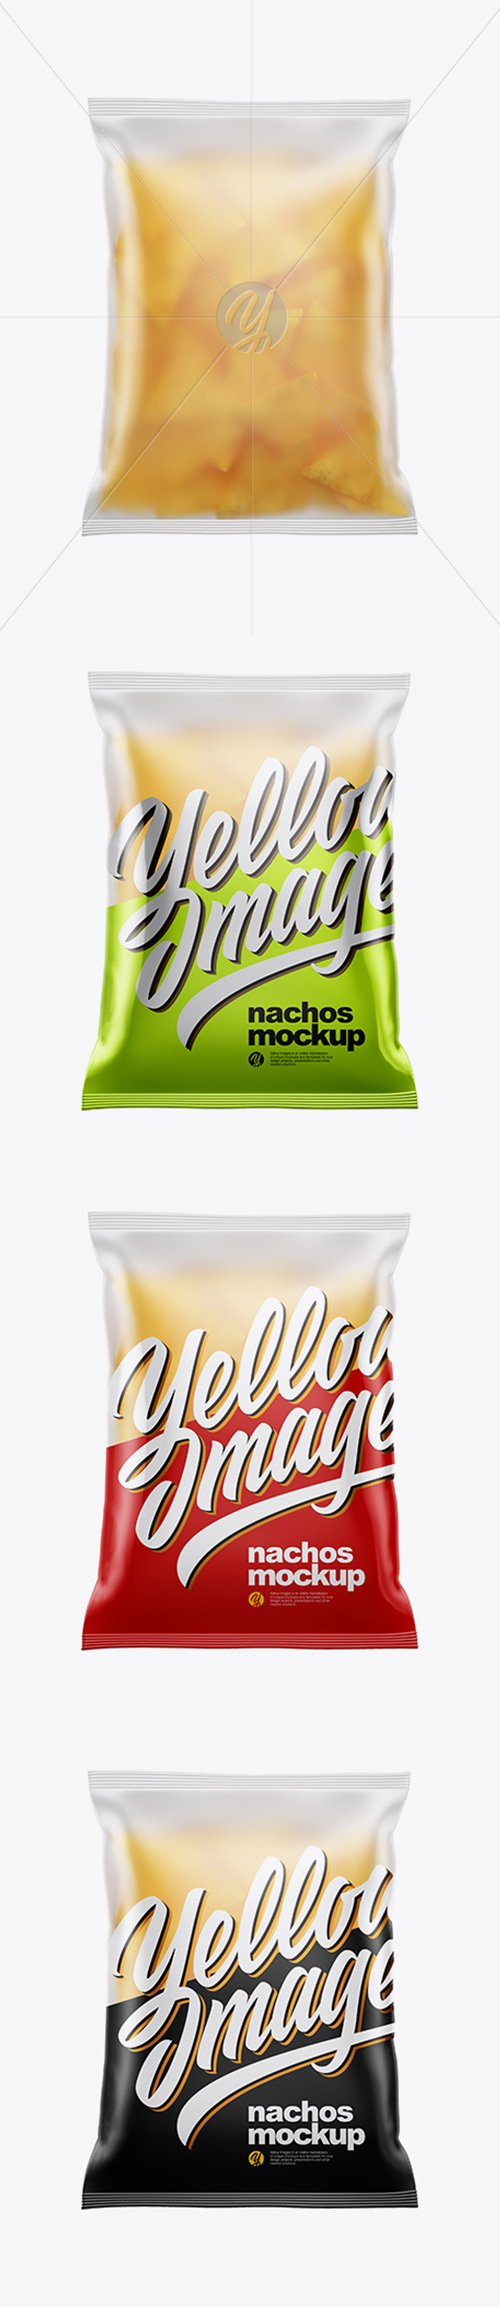 Frosted Bag With Nachos Mockup 38532 TIF